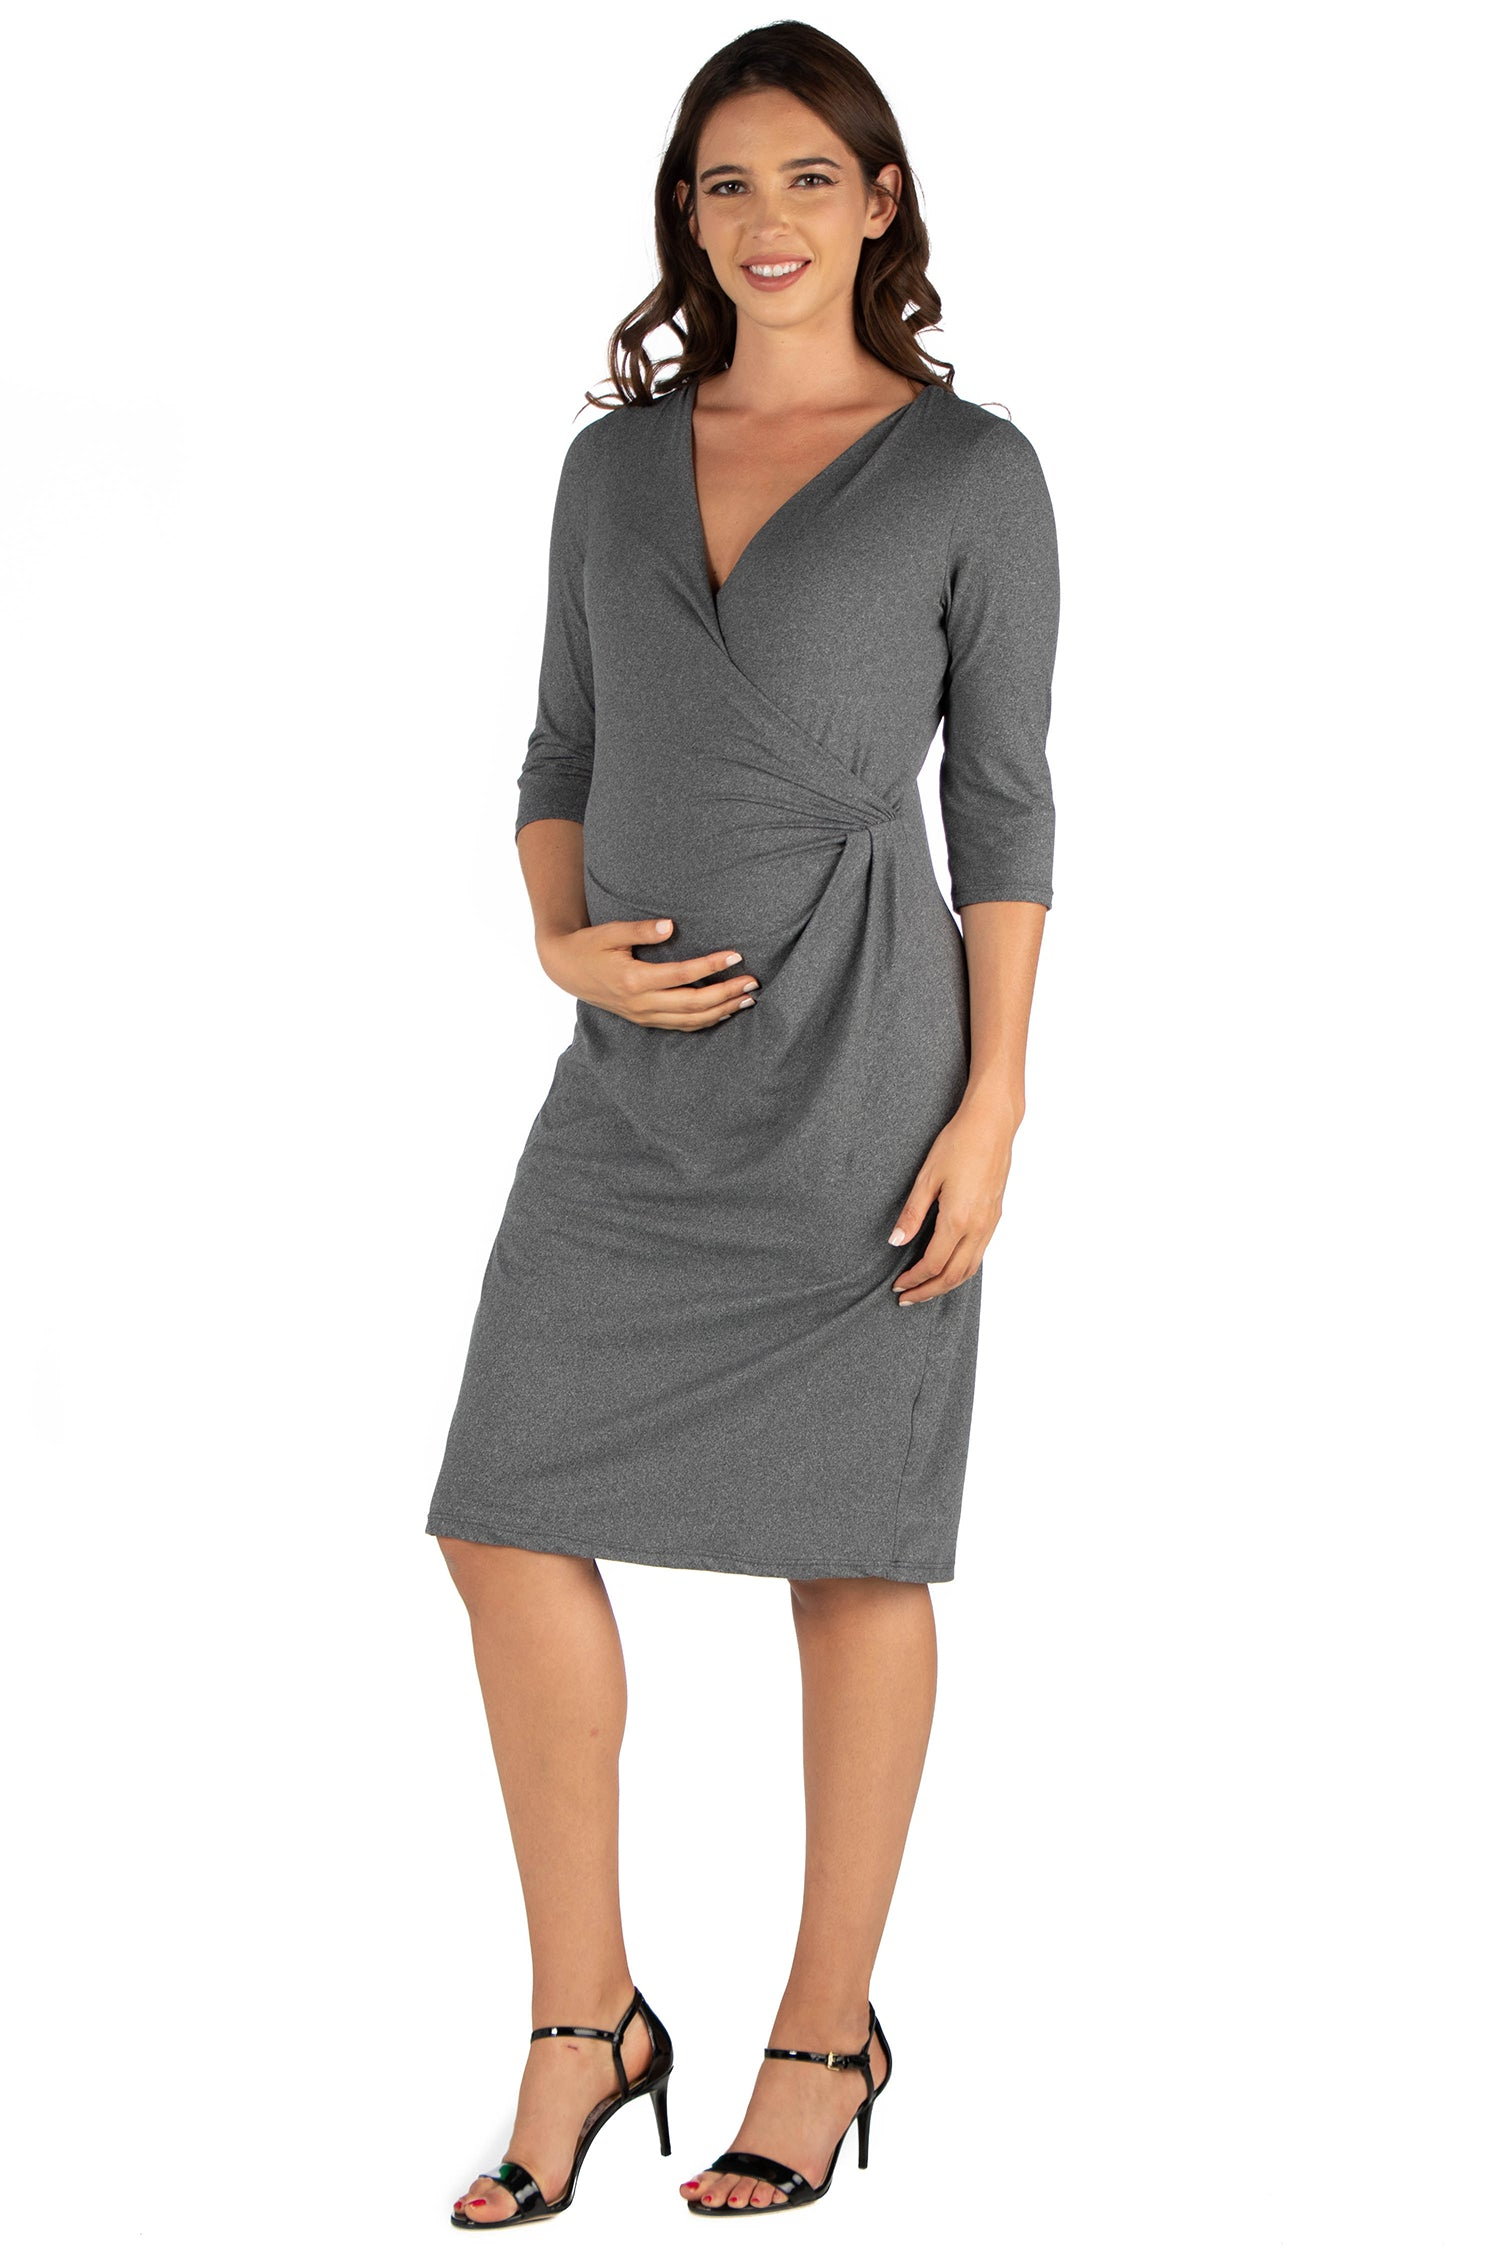 24seven Comfort Apparel Draped in Style Knee Length V Neck Maternity Dress-DRESSES-24Seven Comfort Apparel-GREY-1X-24/7 Comfort Apparel